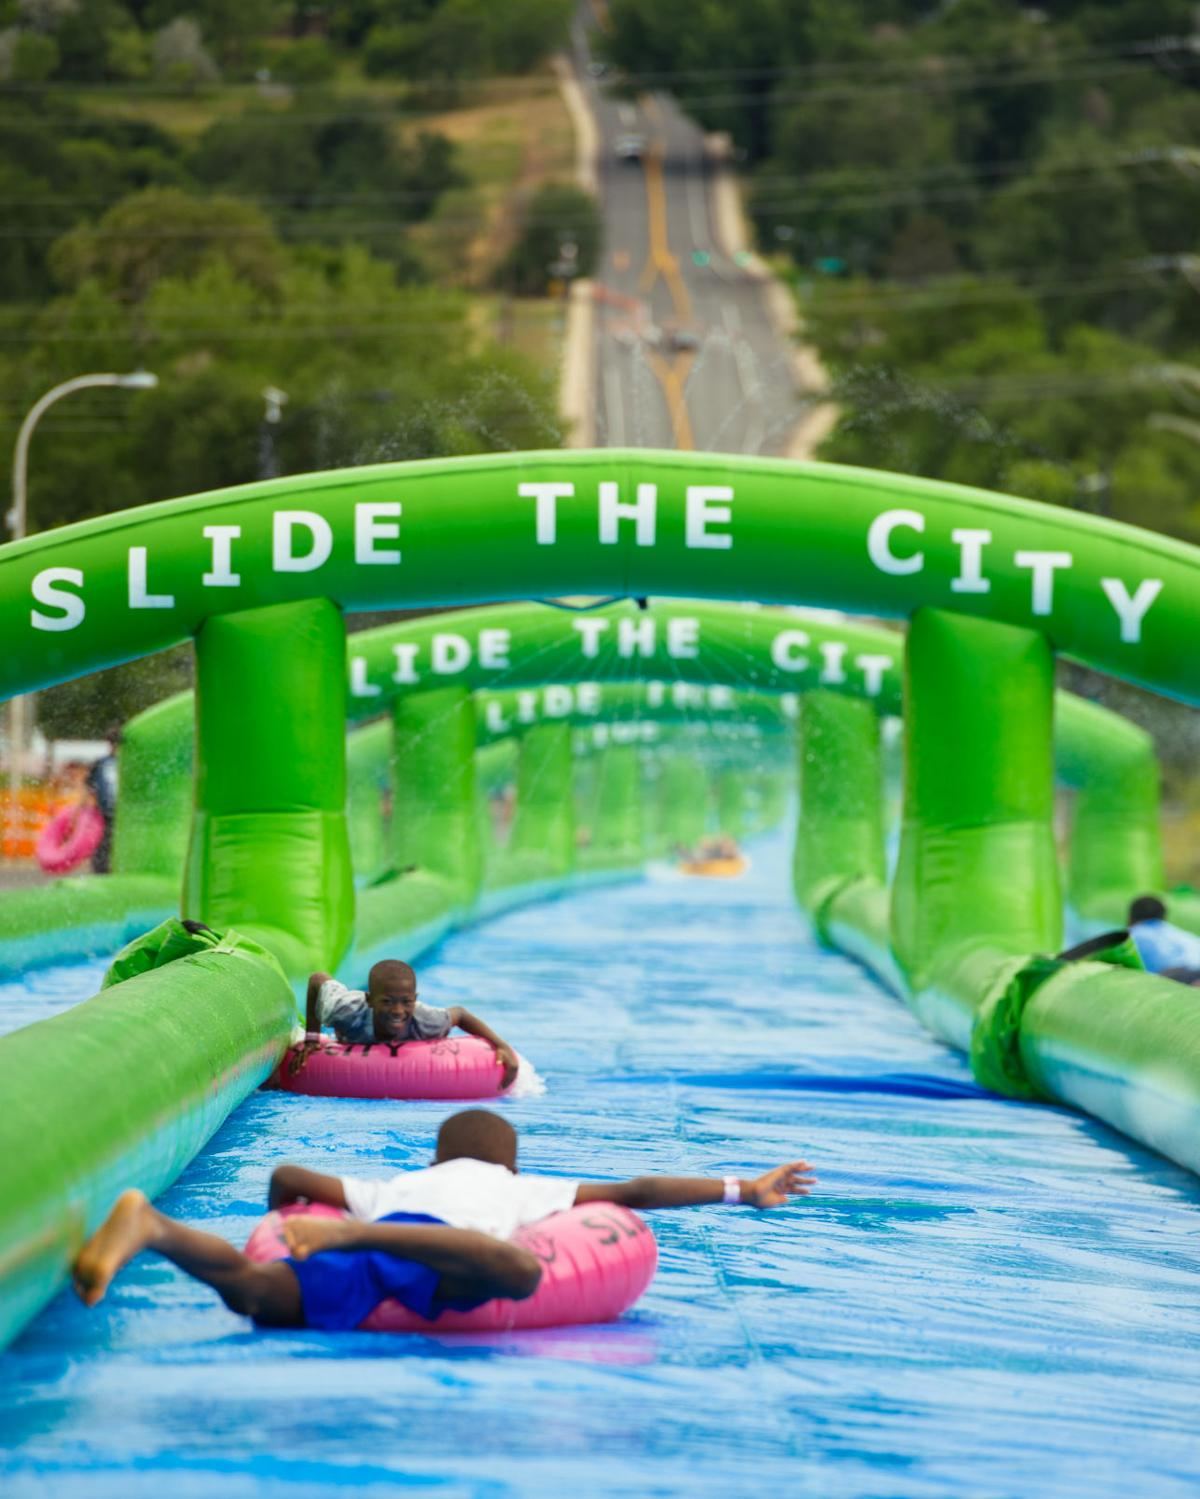 Slide the City brings out the kid in everyone attending